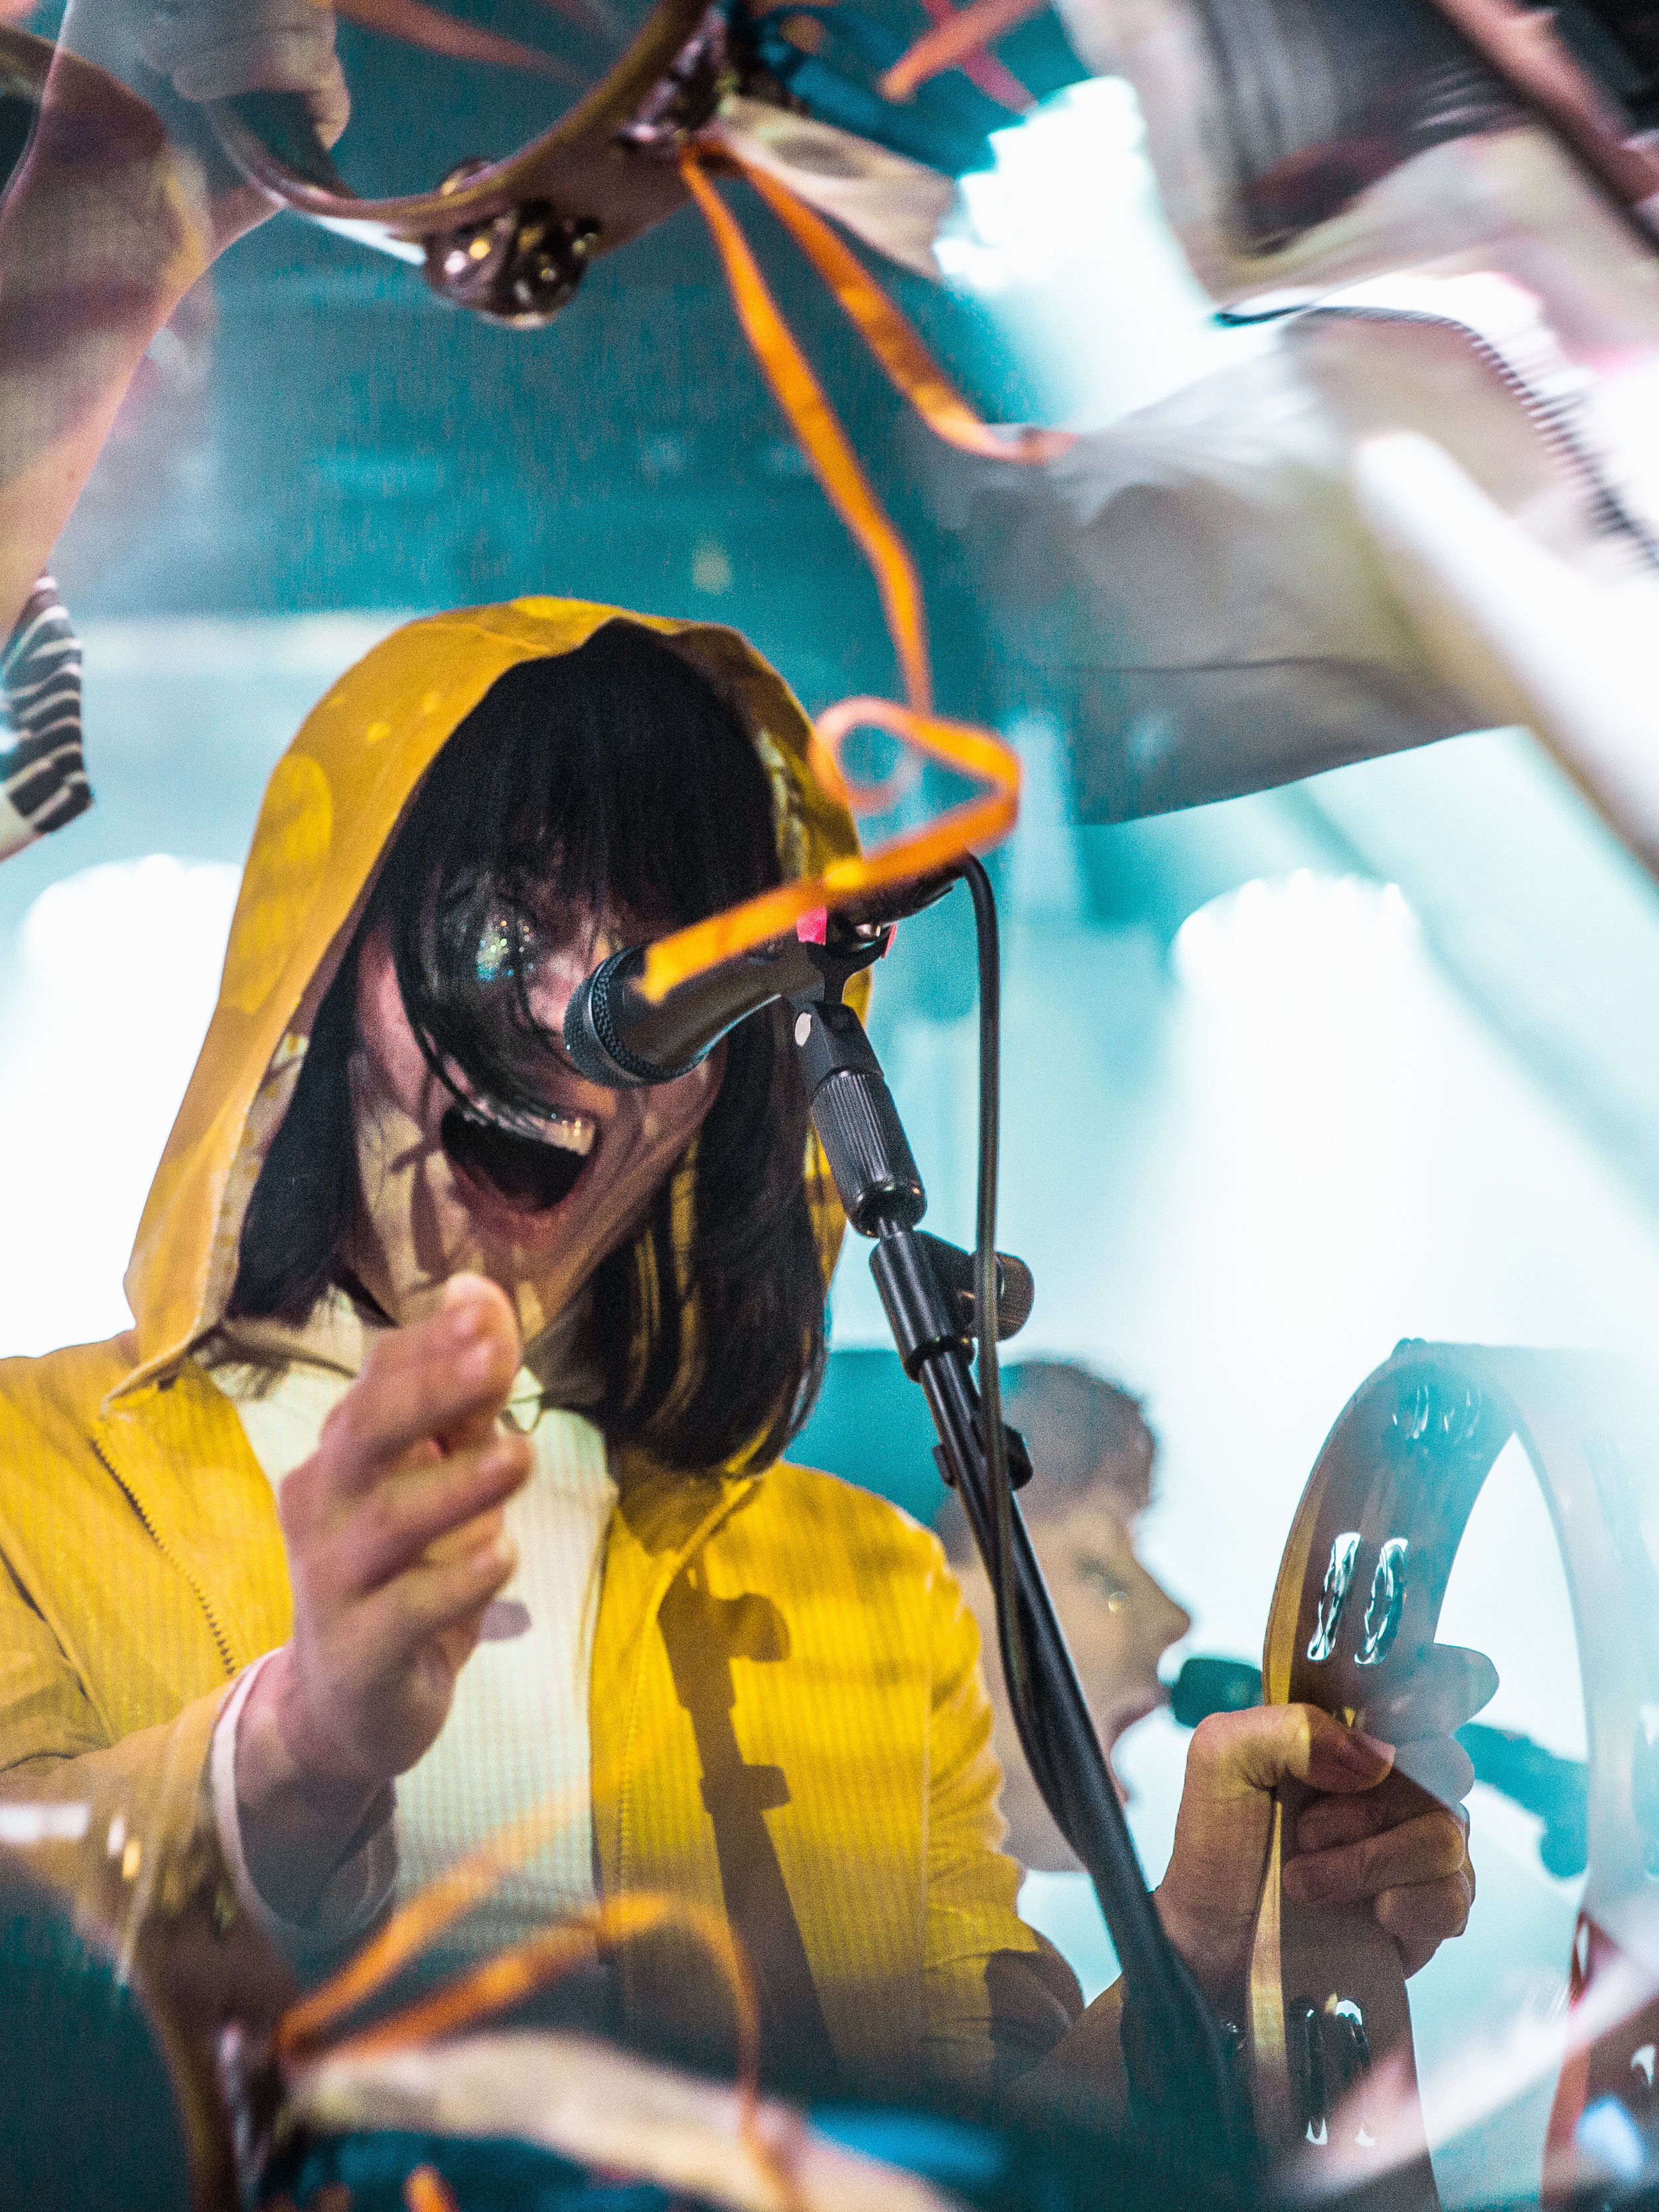 kirby-gladstein-photography-superorganism-concert-moroccan-lounge-los-angeles-15